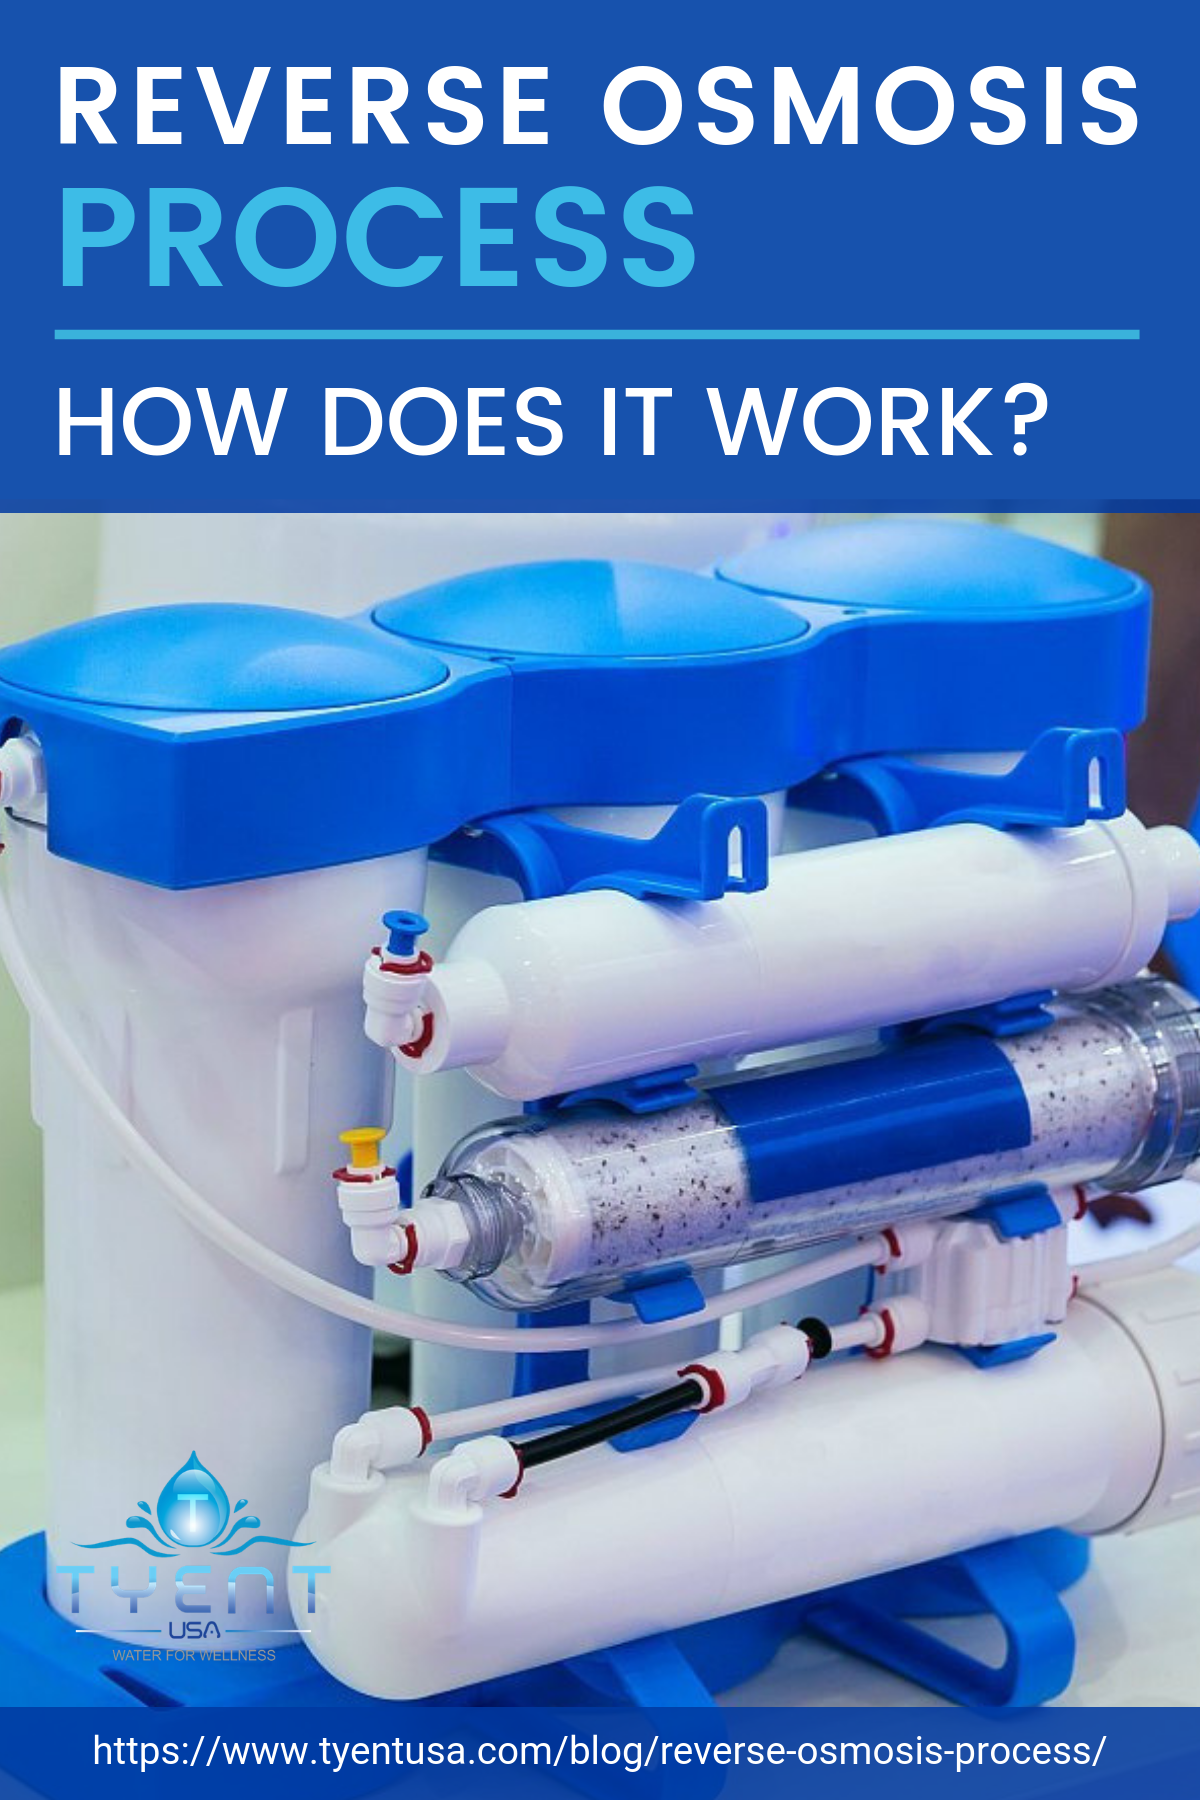 Reverse Osmosis Process How Does It Work https://www.tyentusa.com/blog/reverse-osmosis-process/